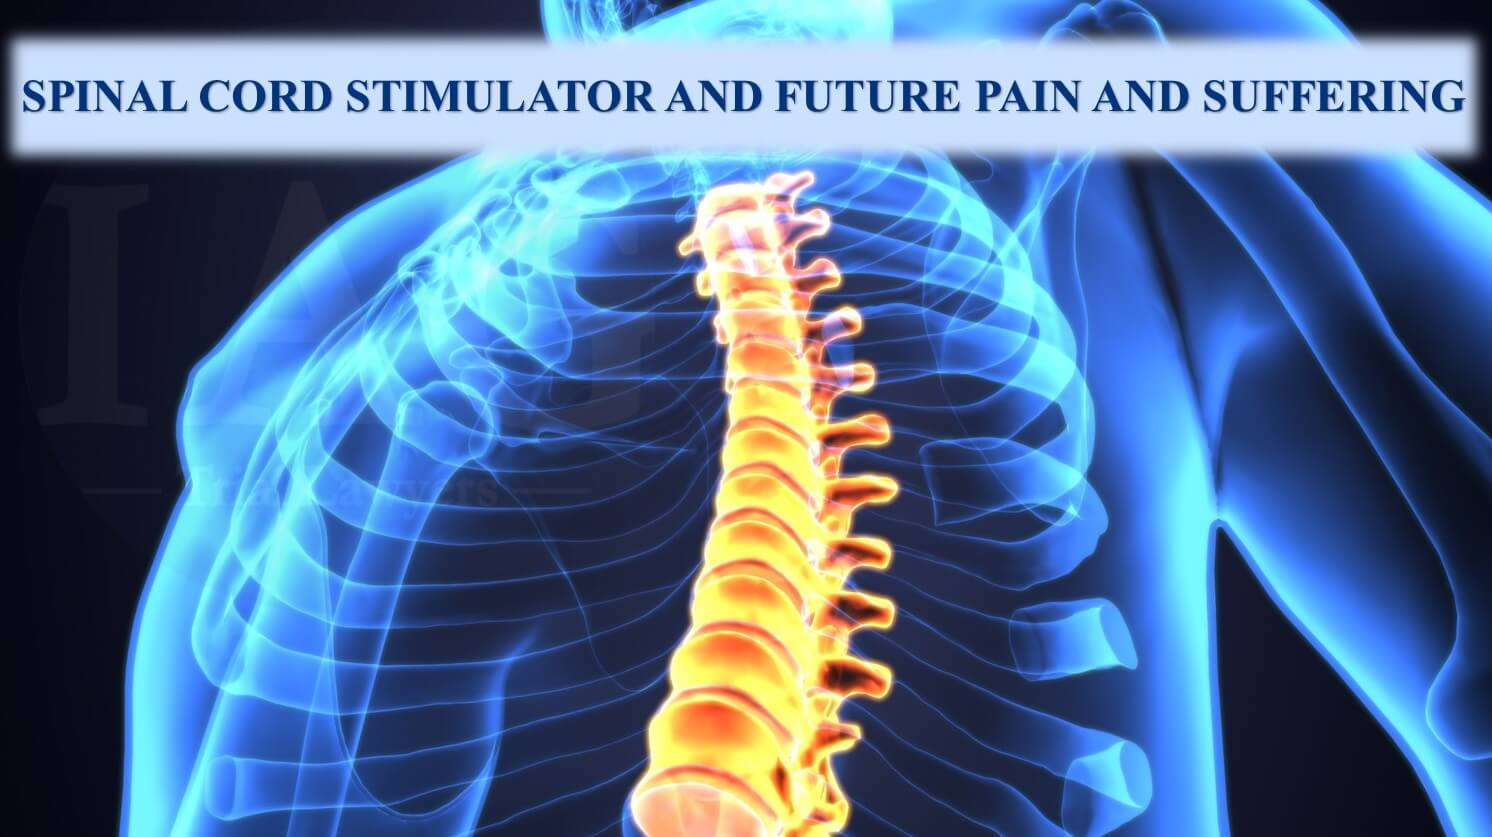 Spinal cord stimulator increases settlement because of pain and suffering